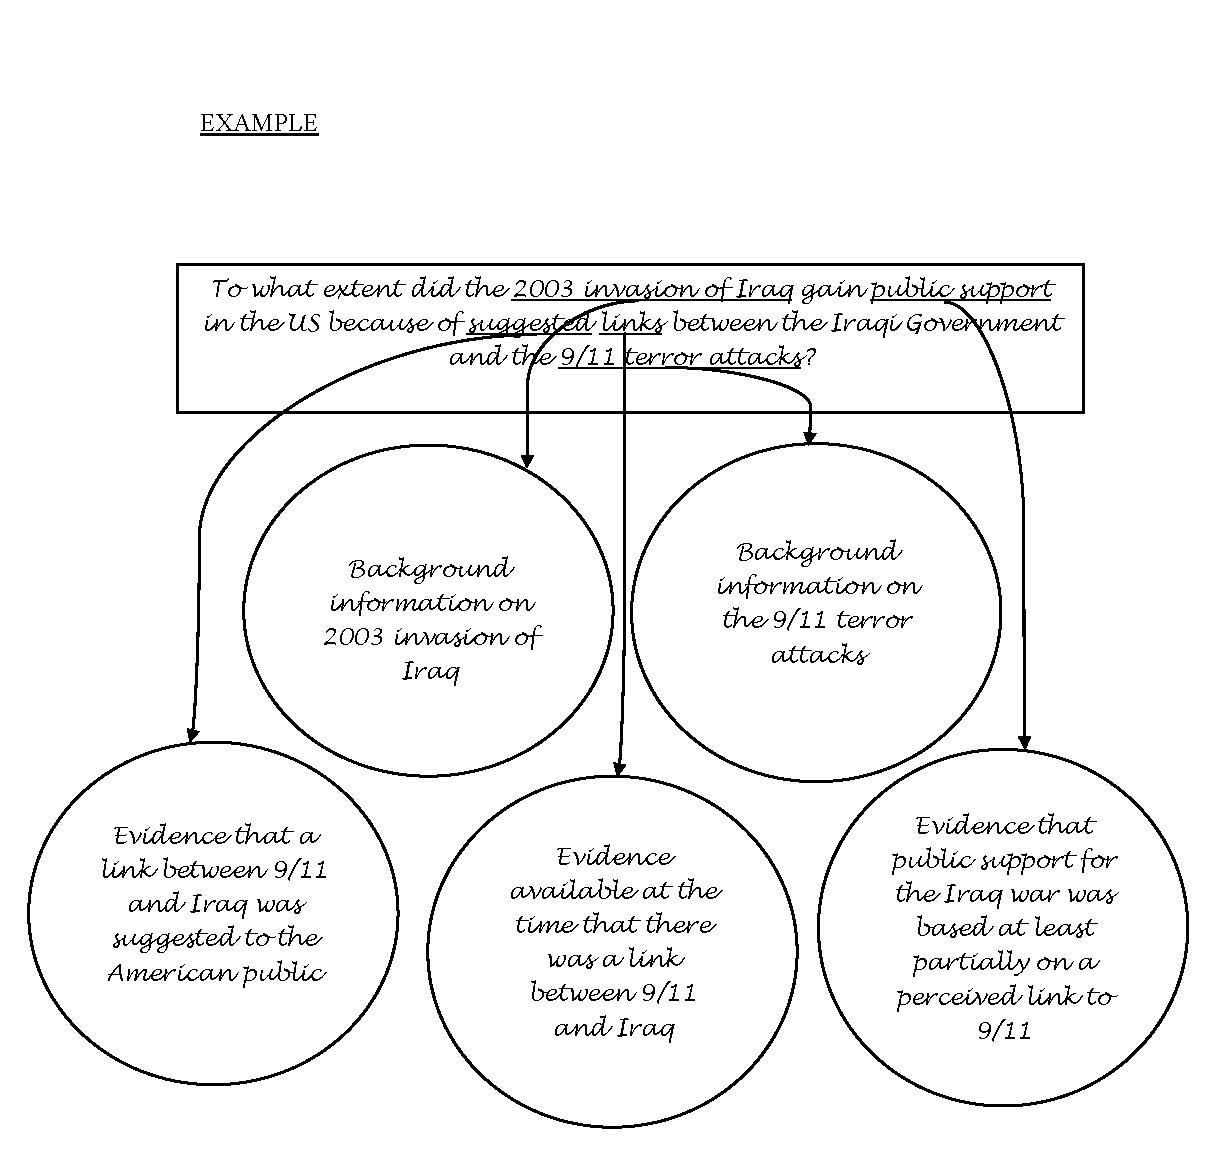 020 Outline Graphic Organizer Example Page Order Of Research Breathtaking Paper Reviews A Mla Authors Full